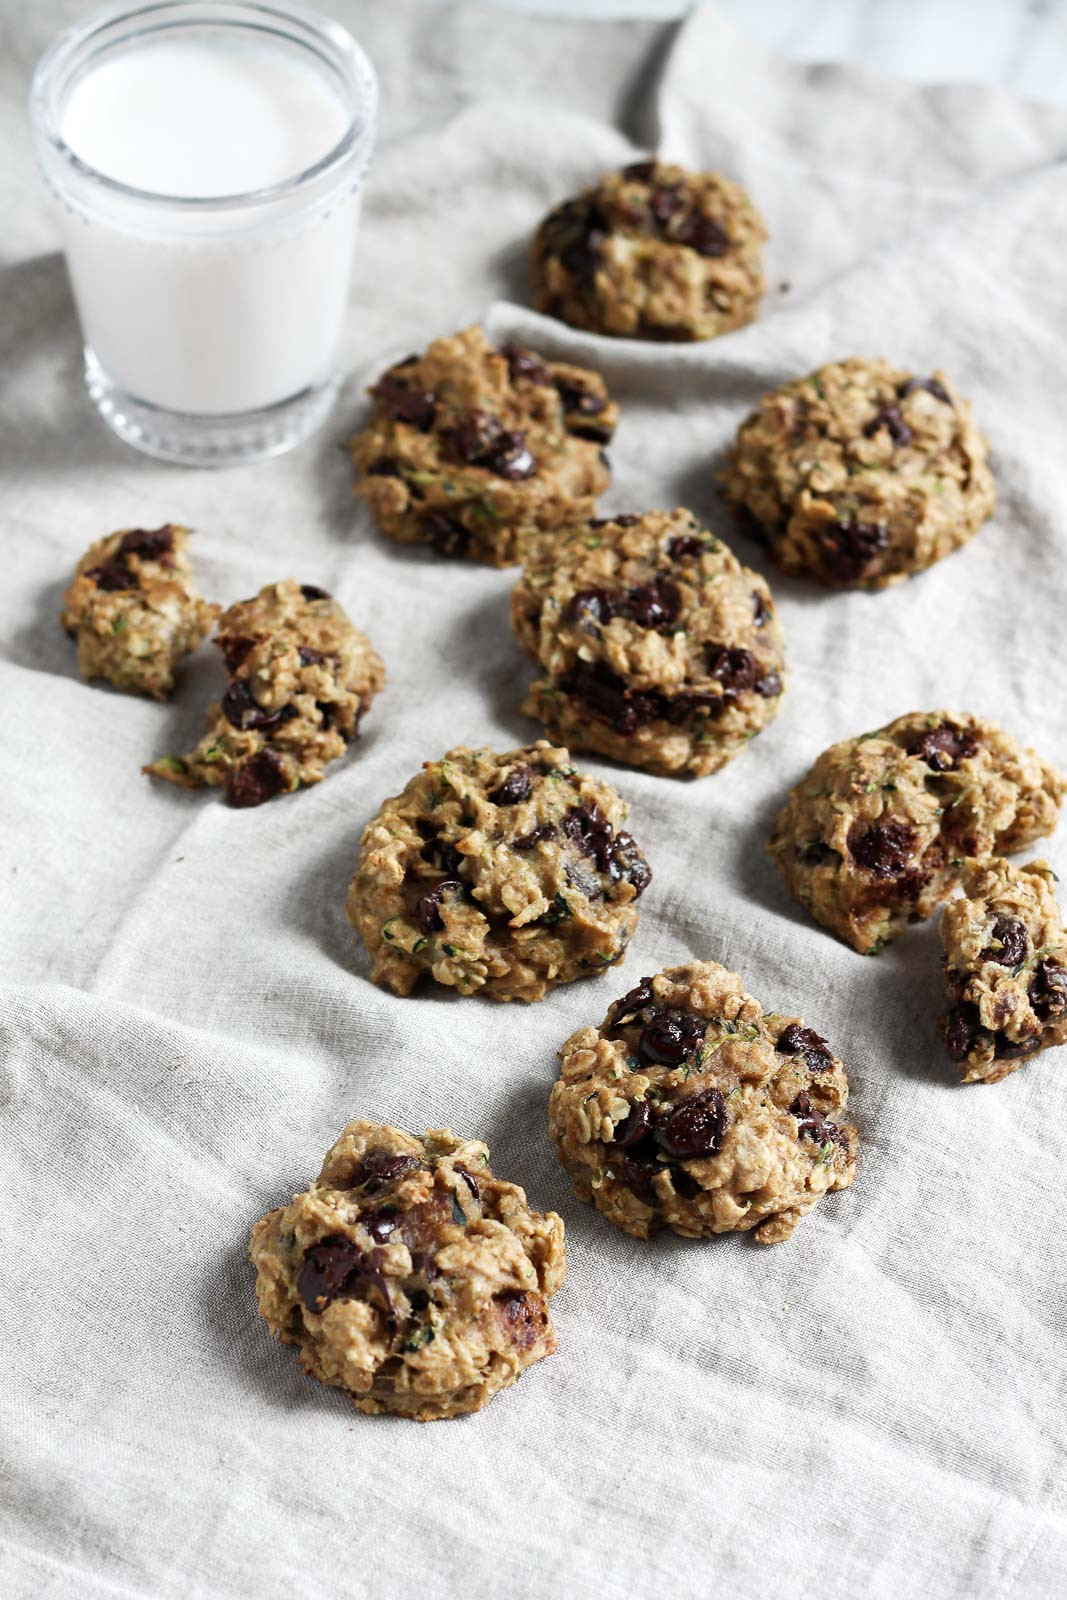 Healthy Oatmeal Chocolate Chip Cookies  Healthy Chocolate Chip Zucchini Oatmeal Cookies